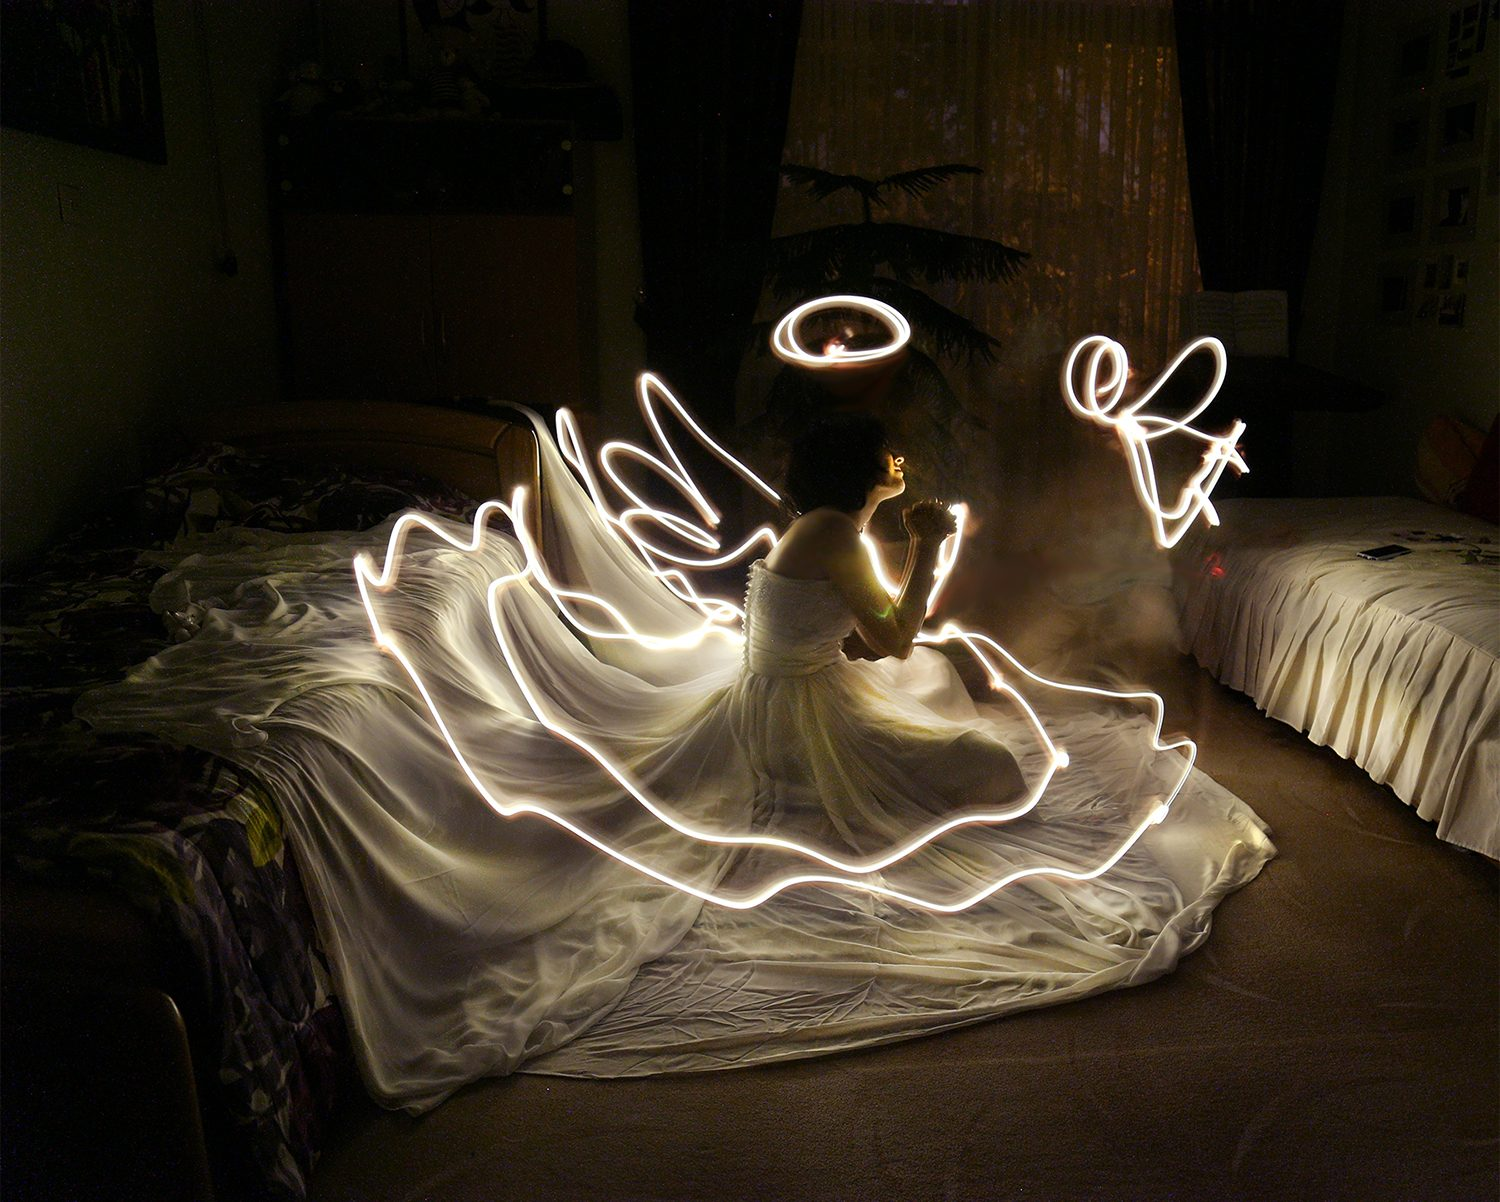 Hidden Stories of The Room Light Painting by Arina Taghvaei and Armaghan Taghvaei